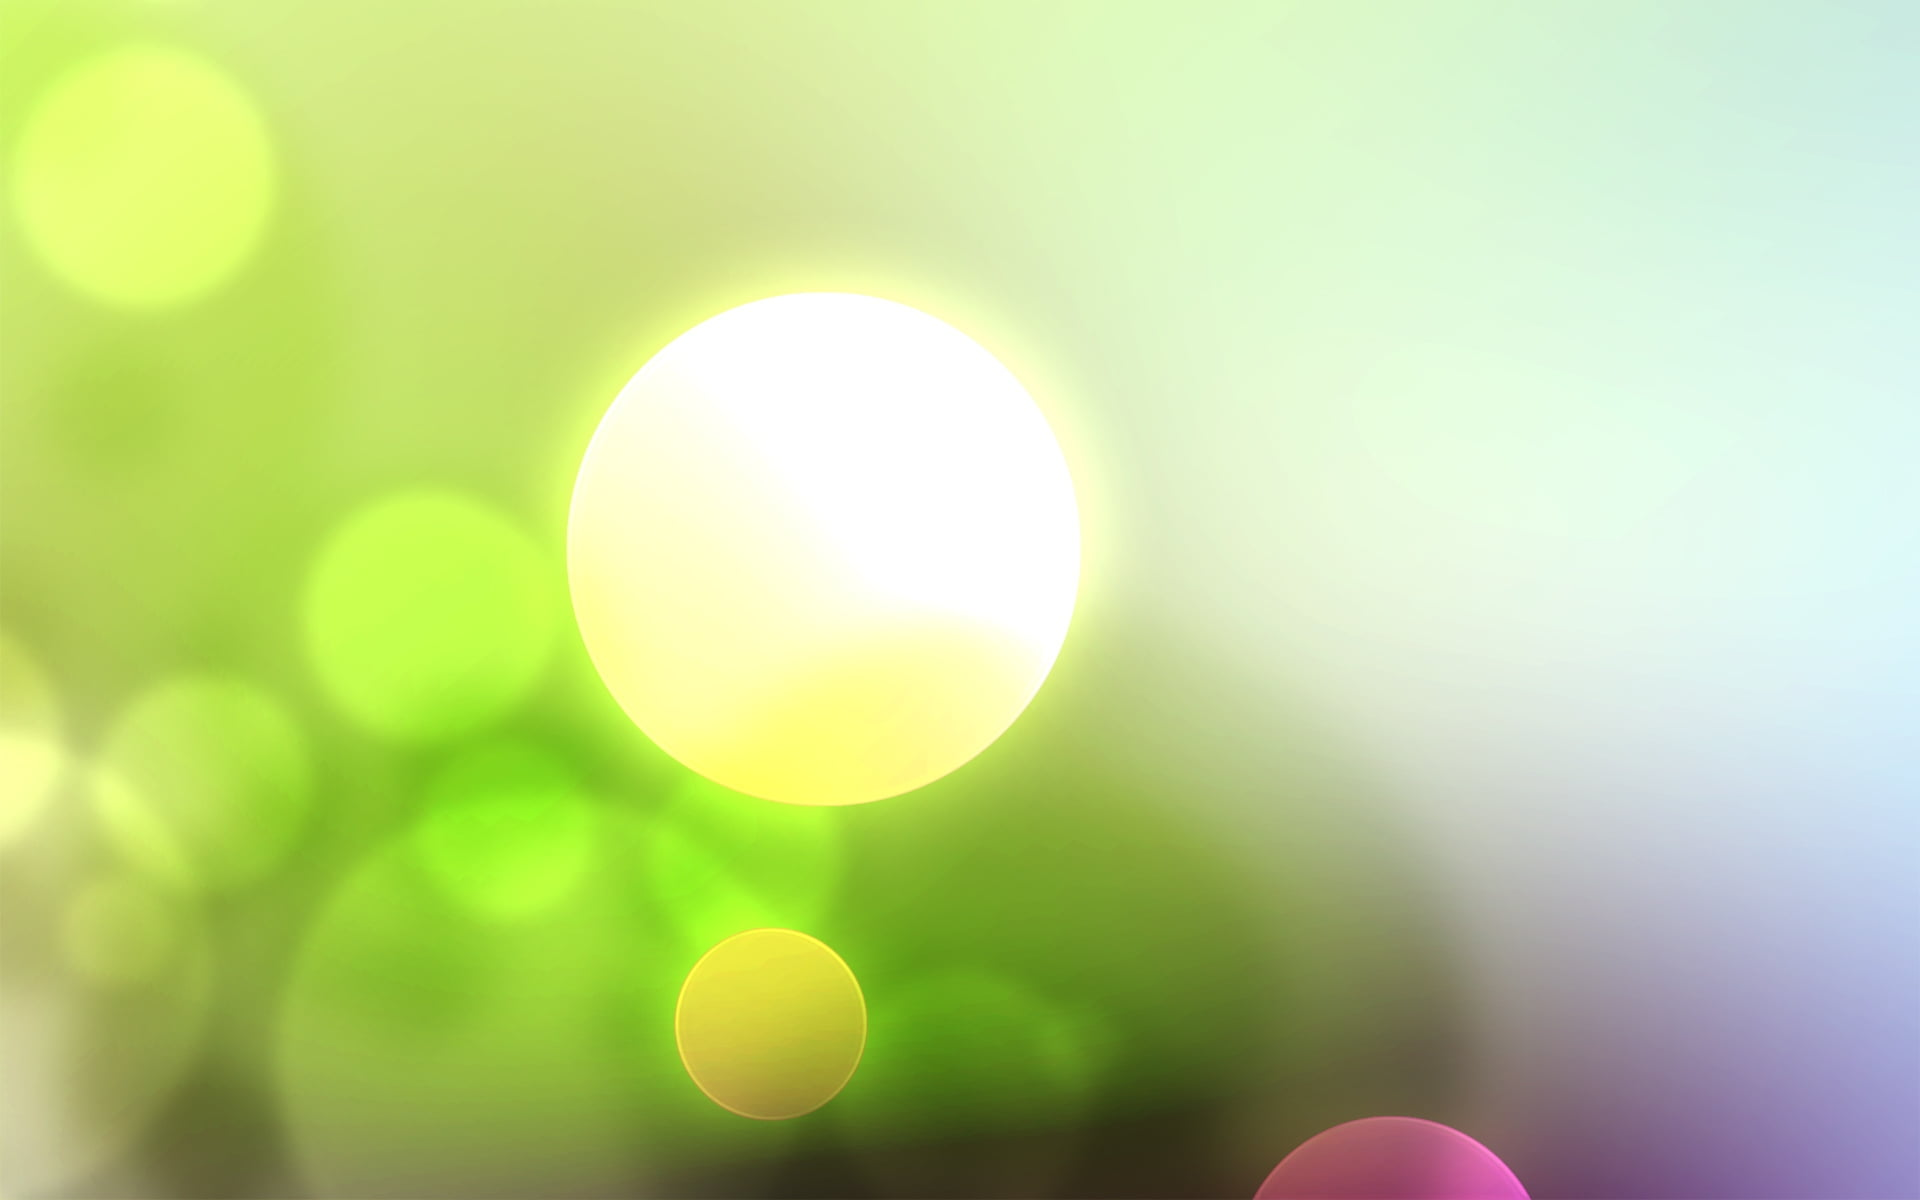 Glare, Light, Circles, Bright HD wallpaper | Wallpaper Flare